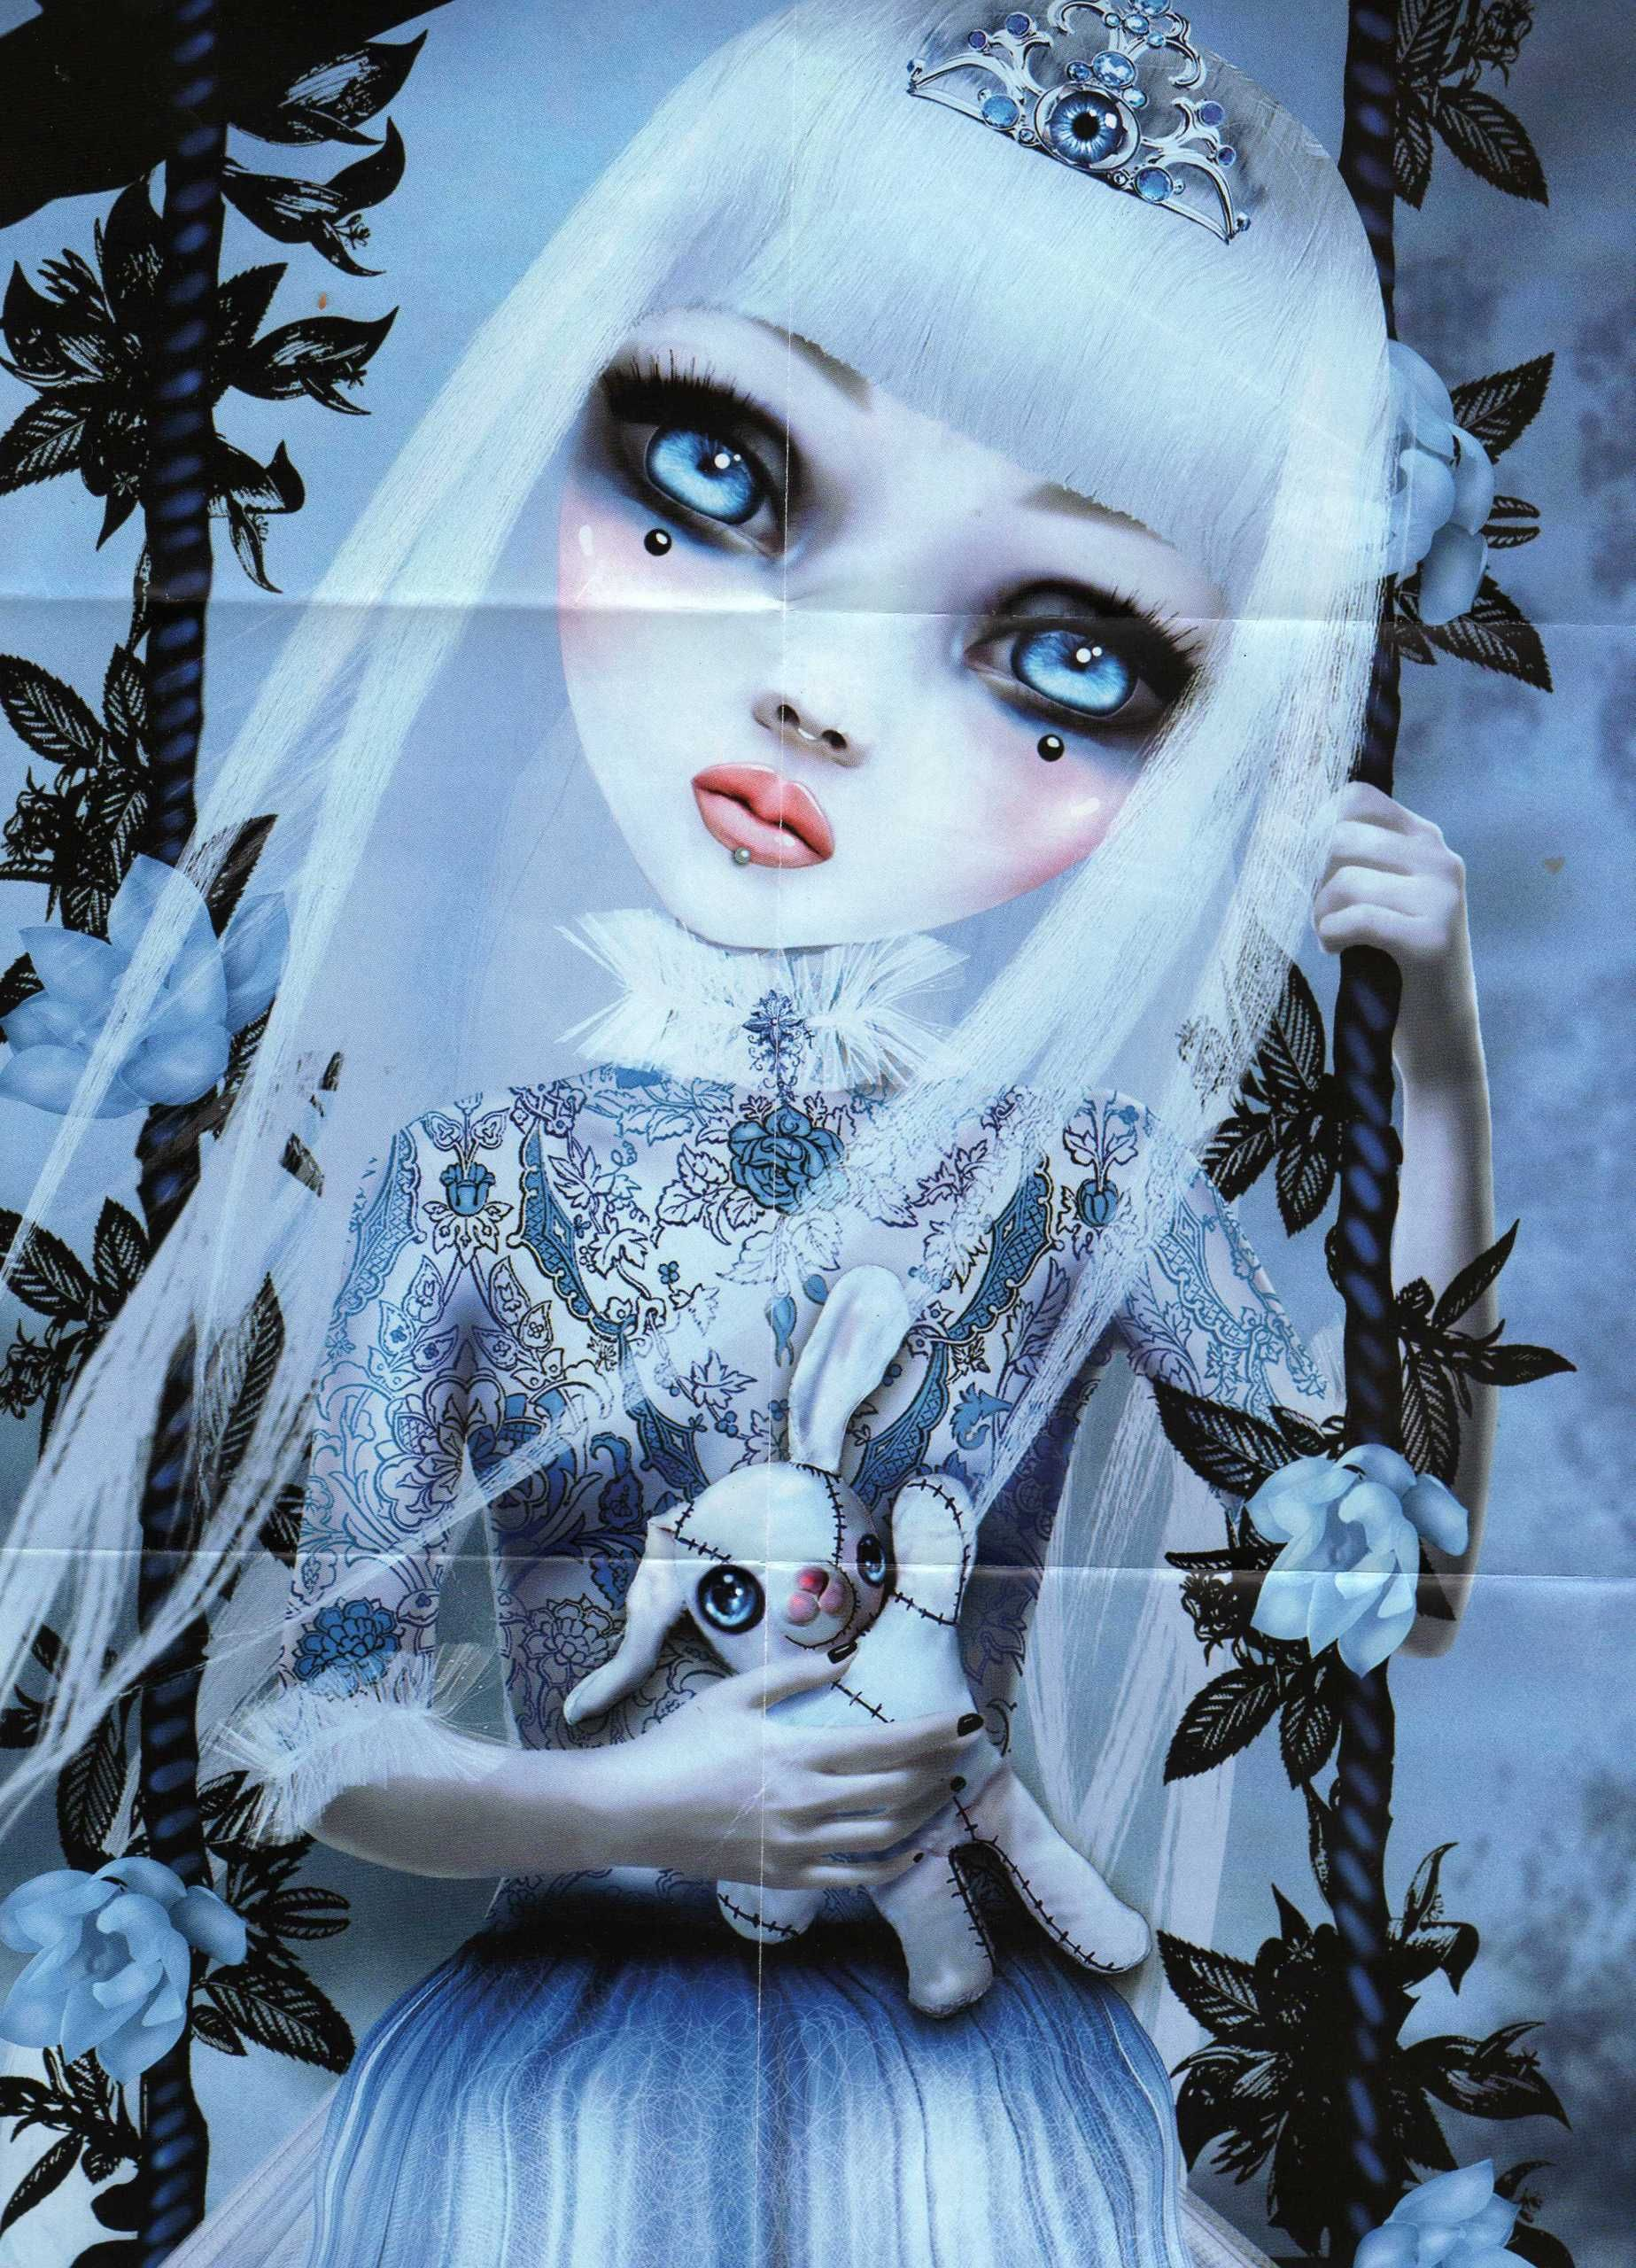 http://images1.fanpop.com/images/photos/2200000/kerli-kerli-2292146-1847-2560.jpg